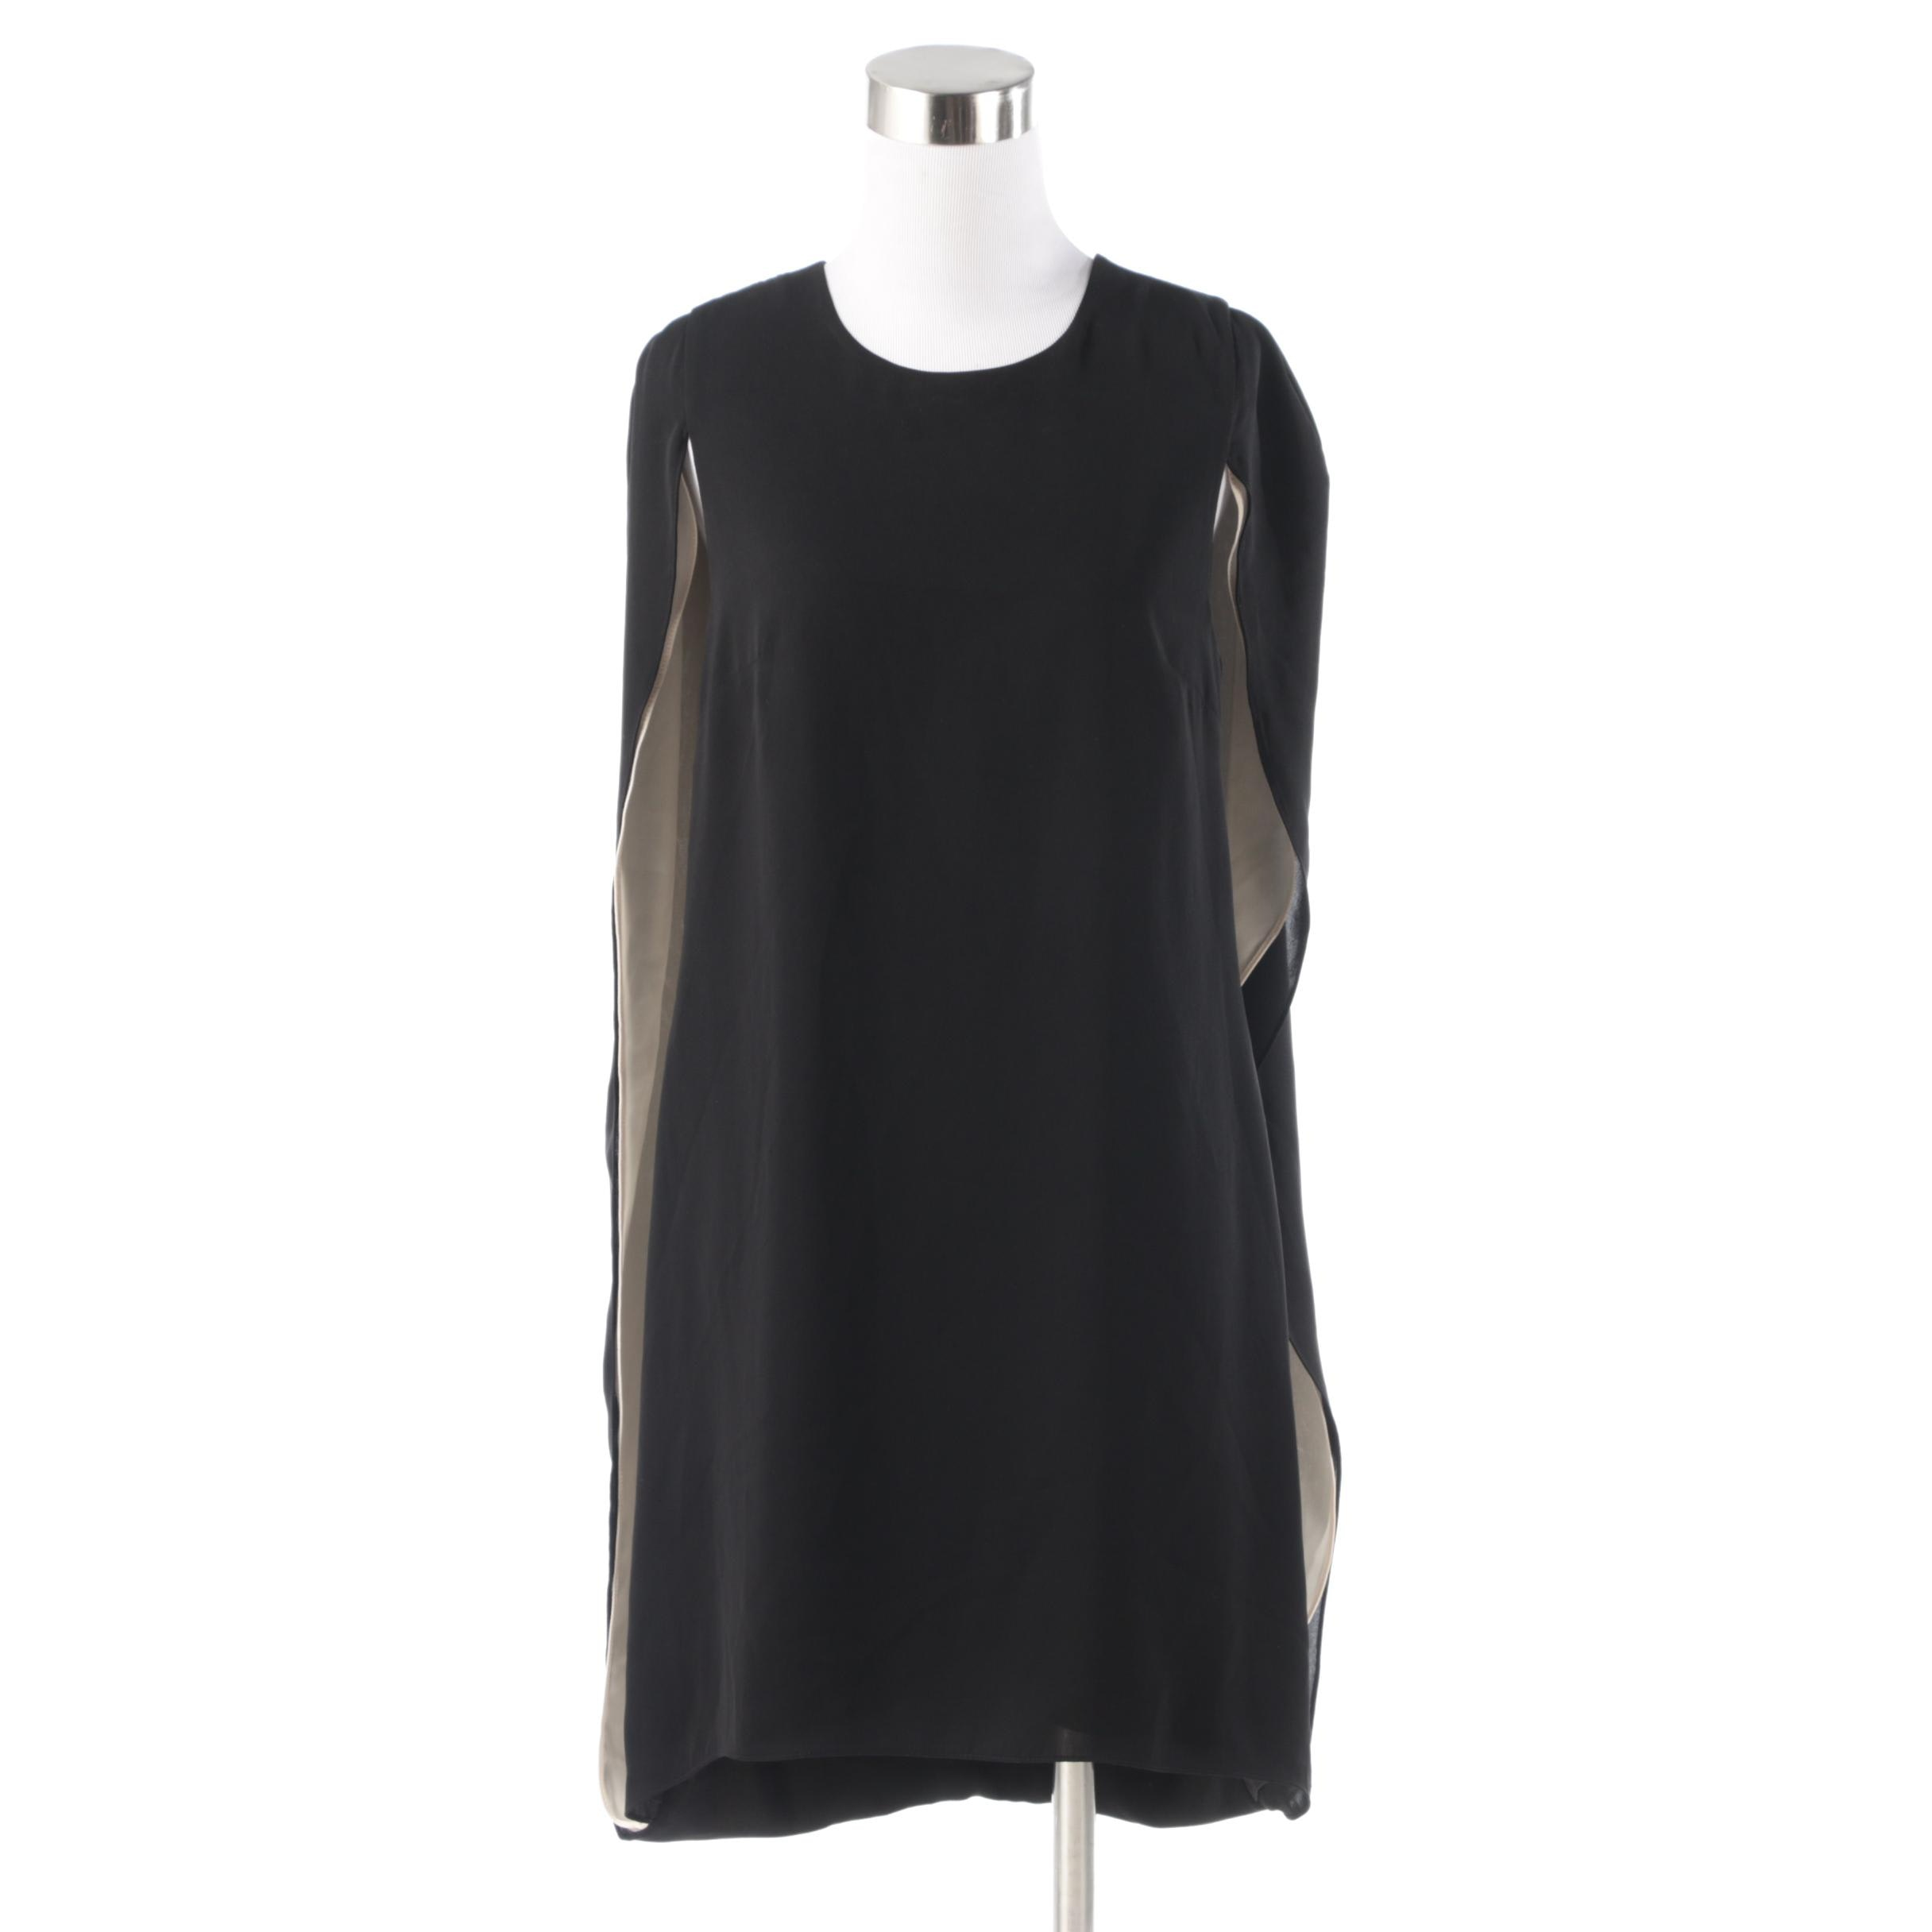 Halston Heritage Evening Collection Dress in Black and Chai with Draped Cape